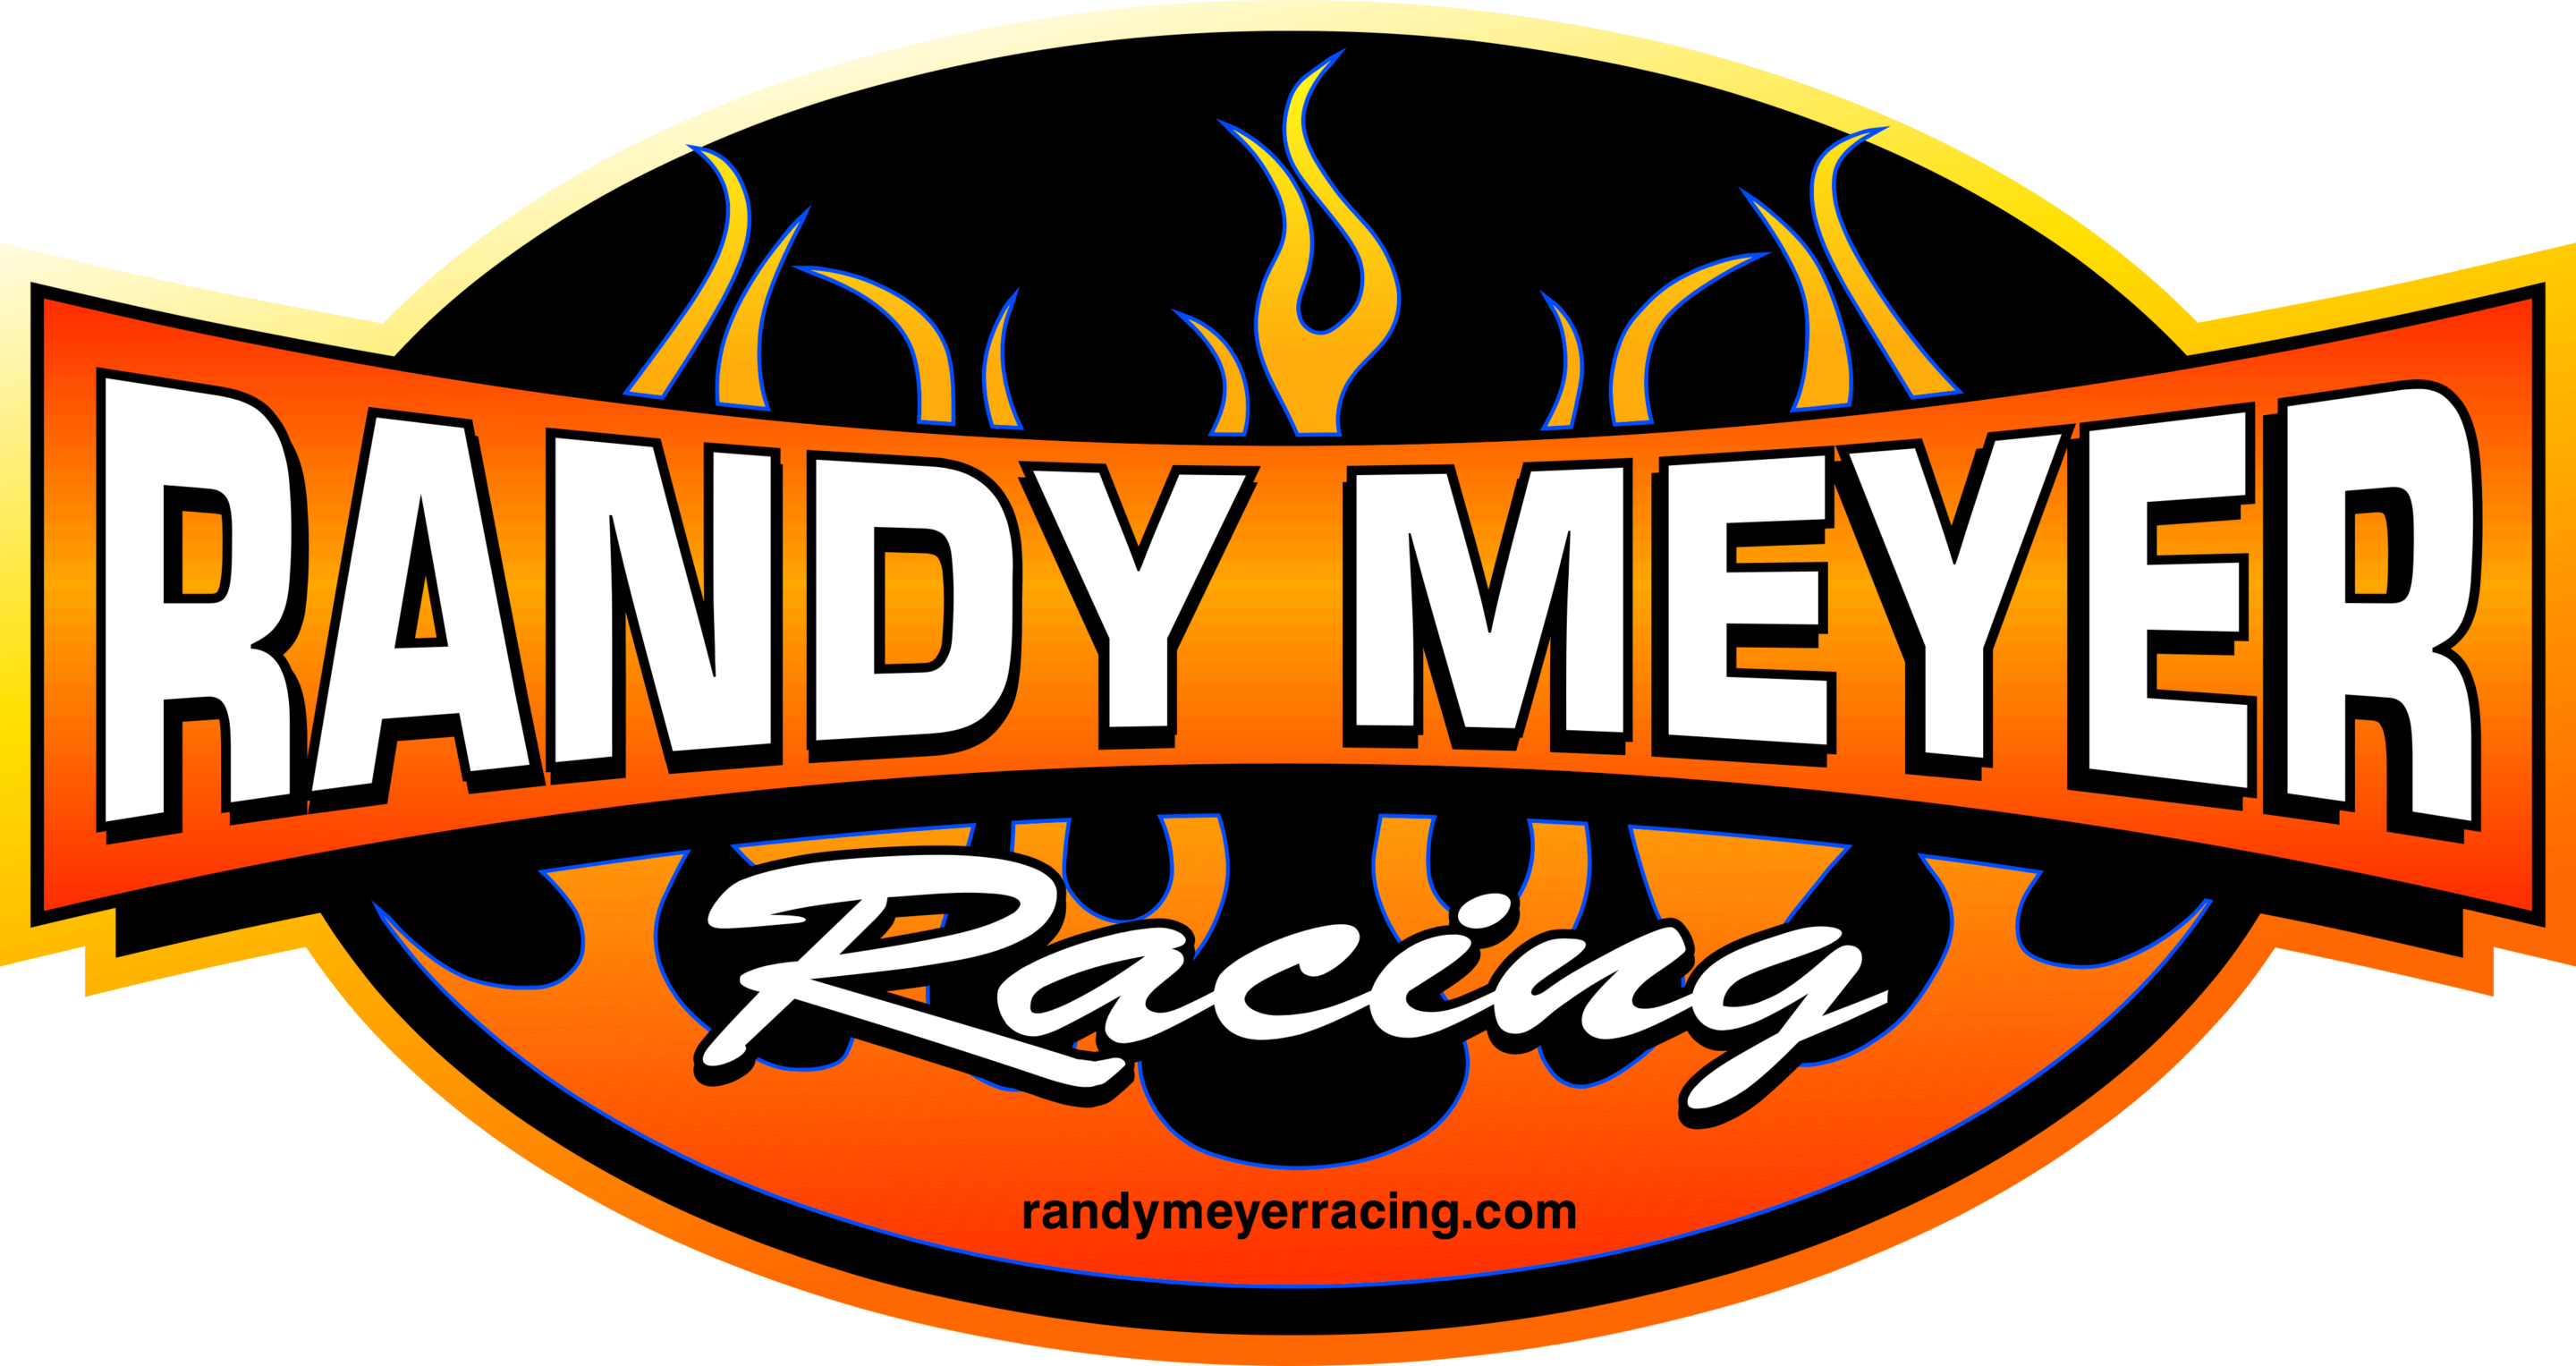 Randy Meyer Racing